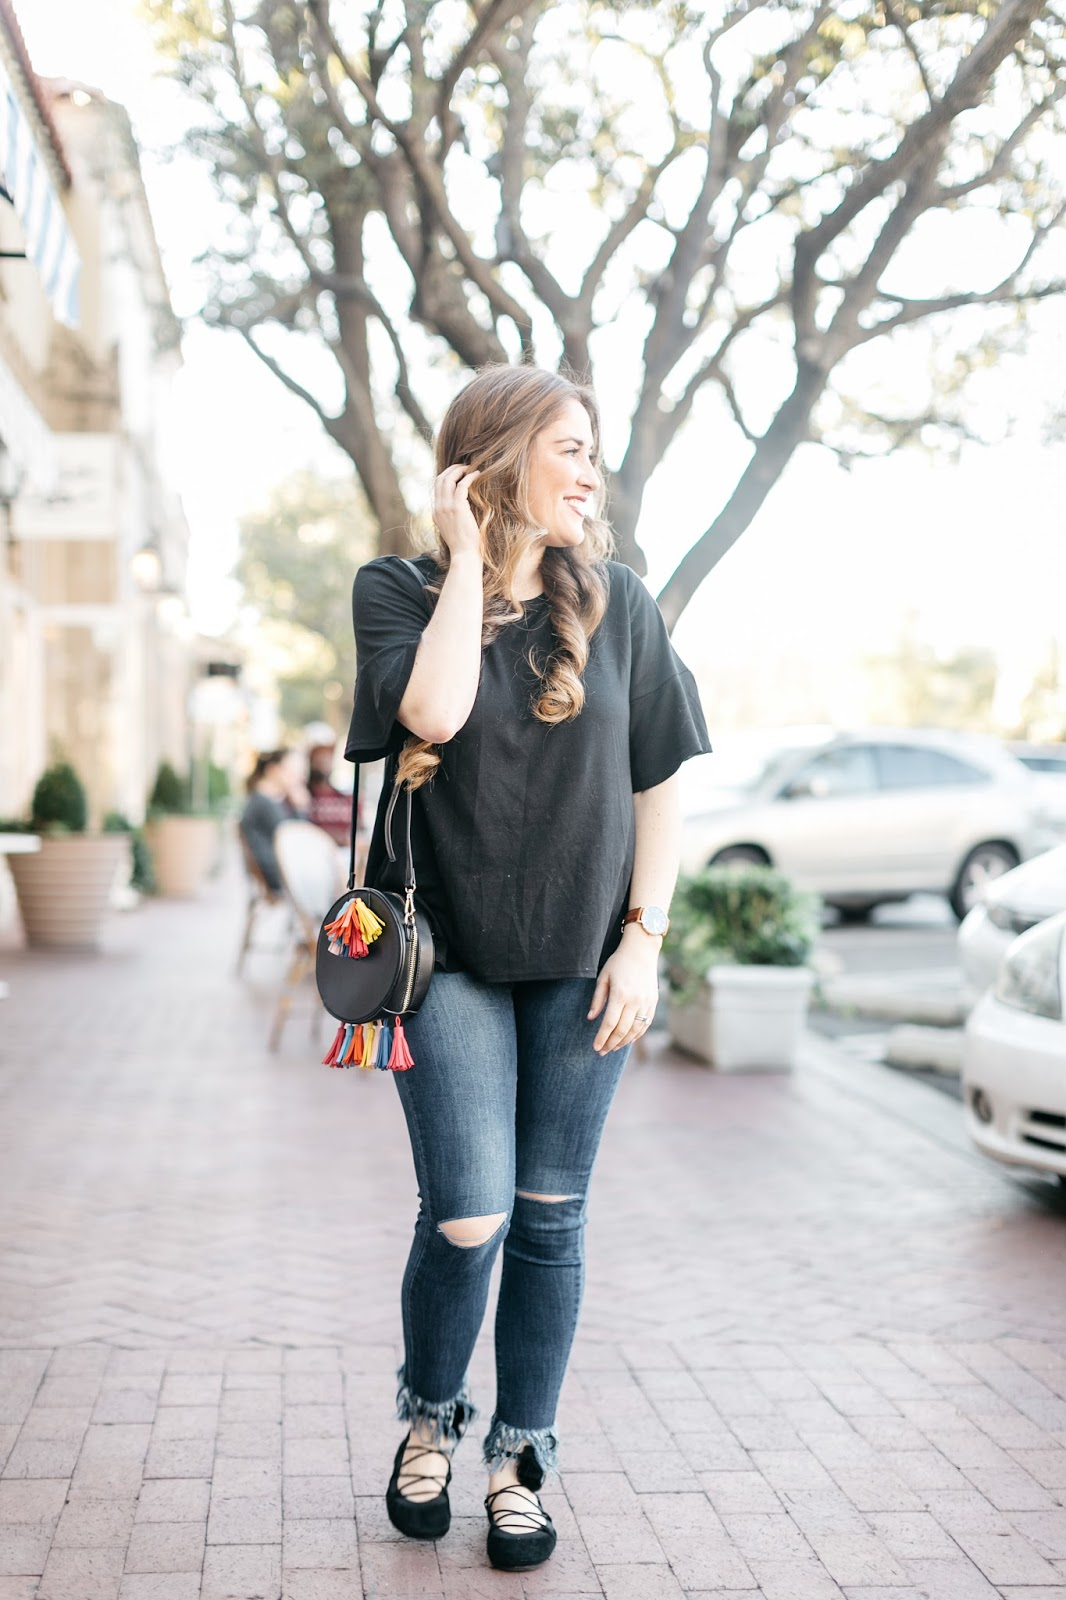 how to accessorize a jeans and tshirt outfit